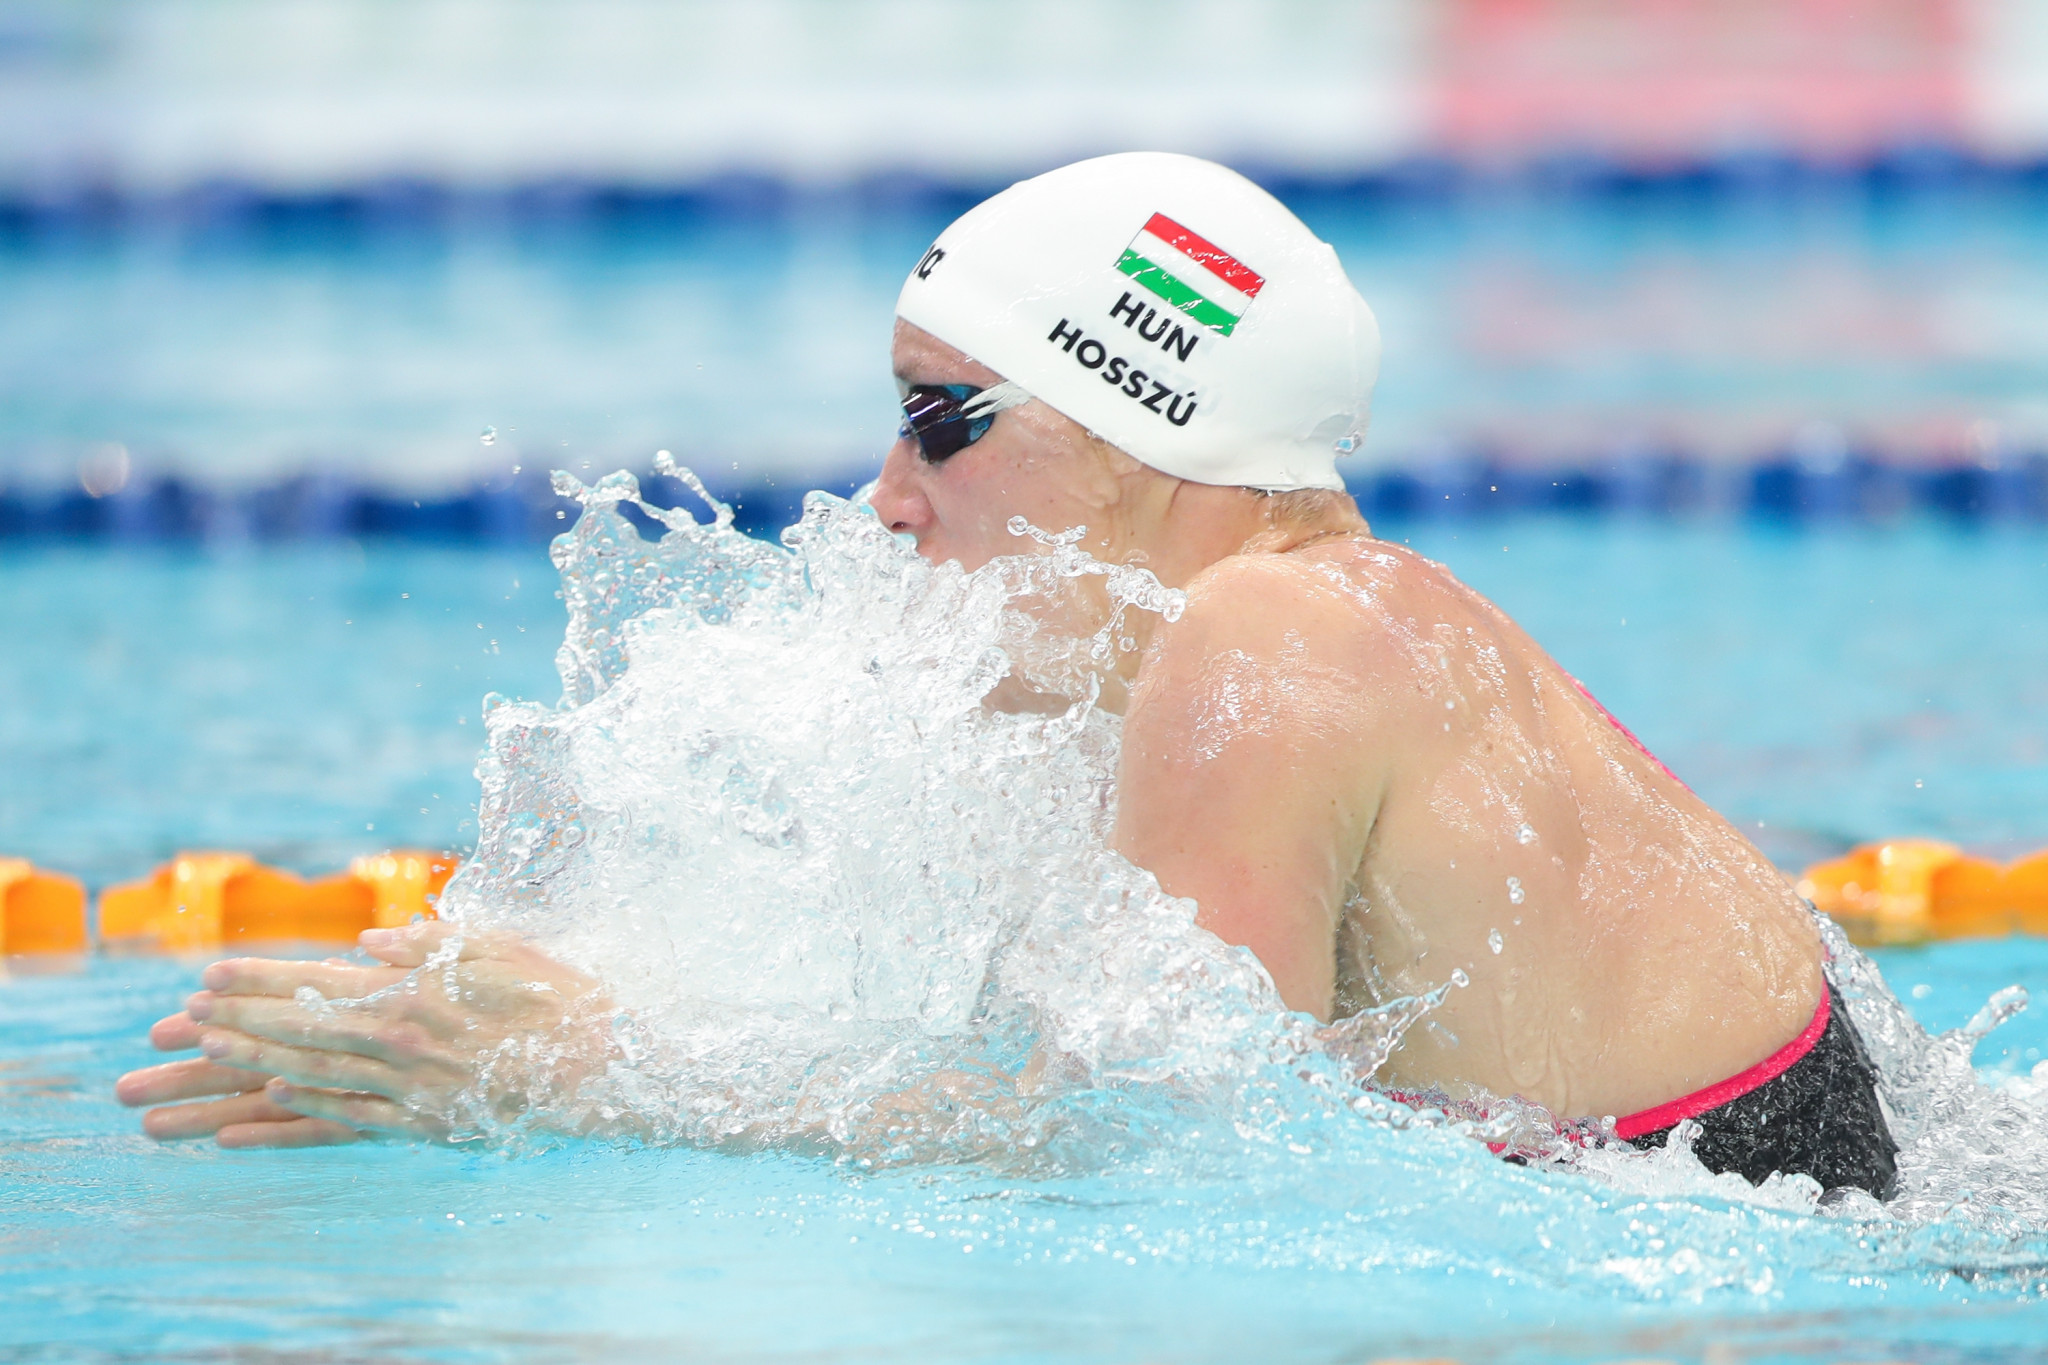 Gold and silver at Beijing Swimming World Cup give Hosszú the edge over rival Sjostrom